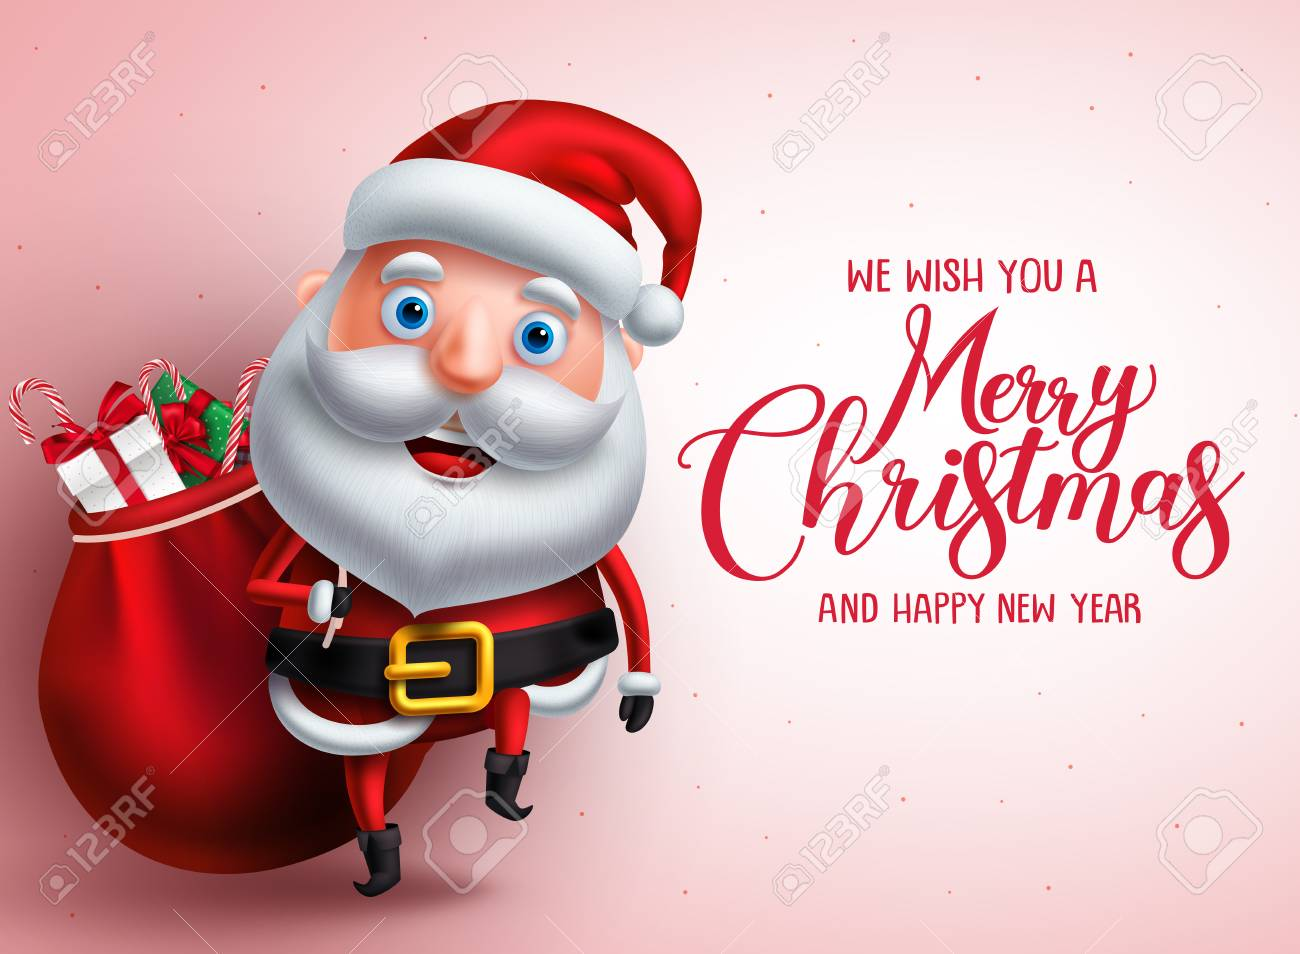 Mery Christmas.Mery Christmas Greeting With Santa Claus Vector Character Carrying